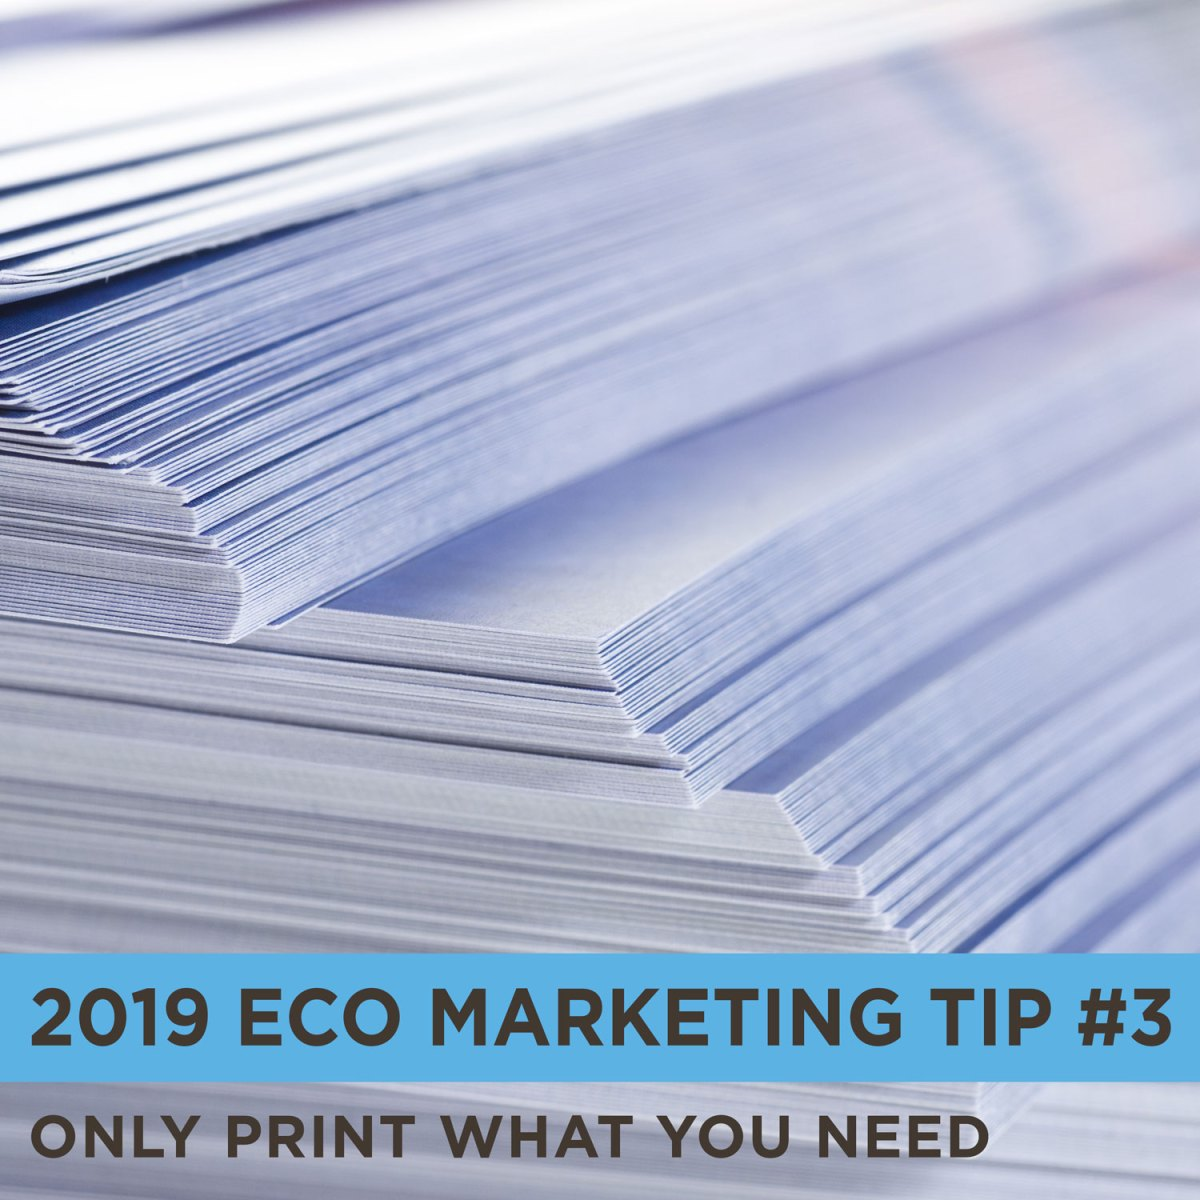 Eco Marketing Tip 3 is to only print what you need